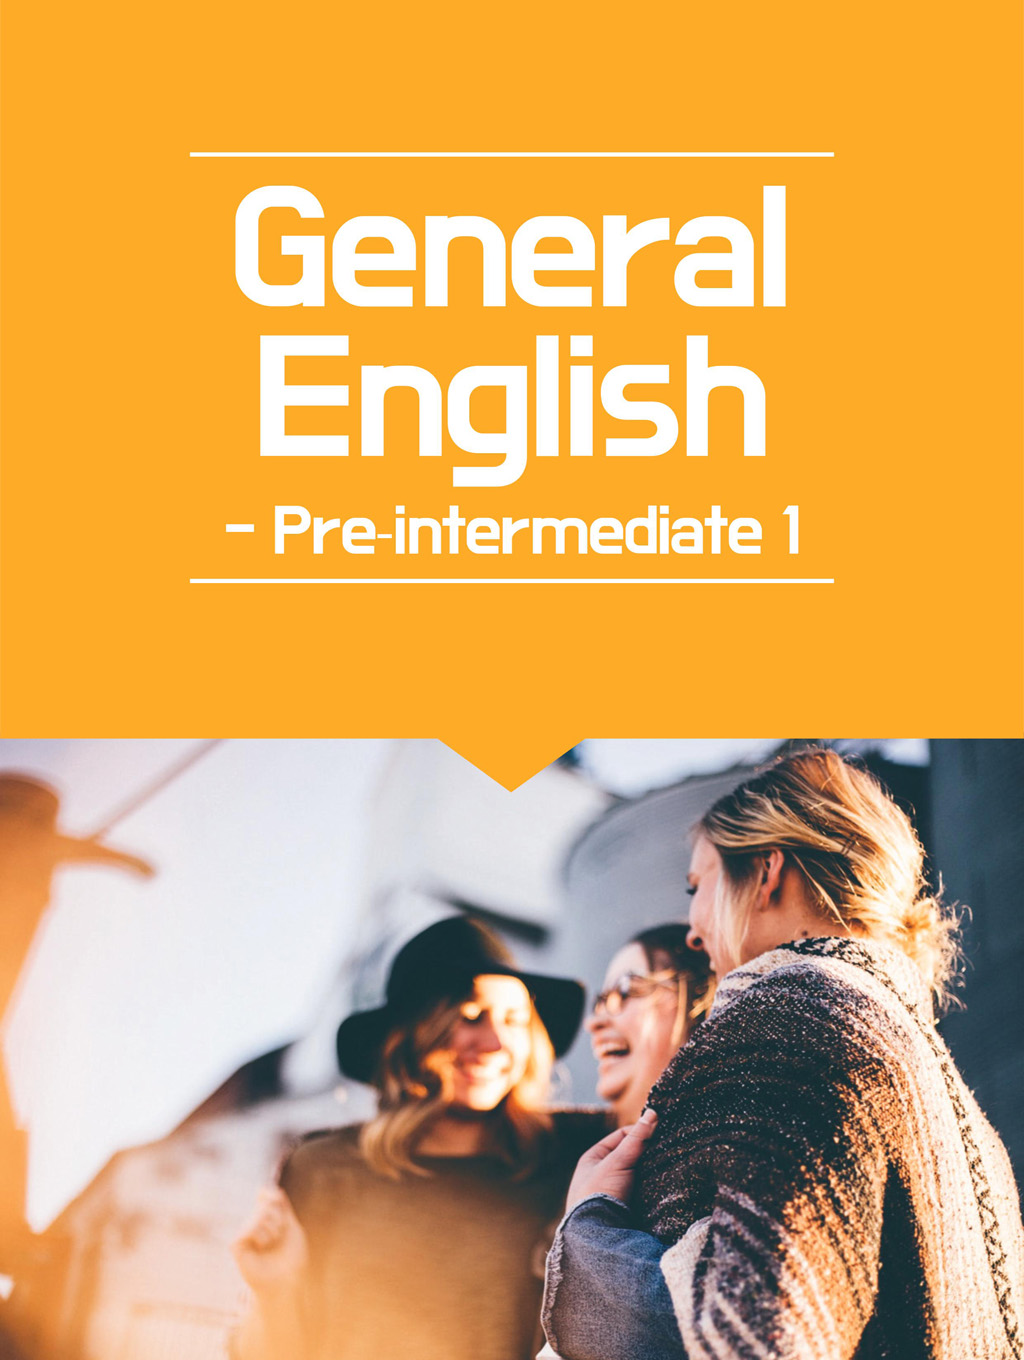 General English - Pre-intermediate 1